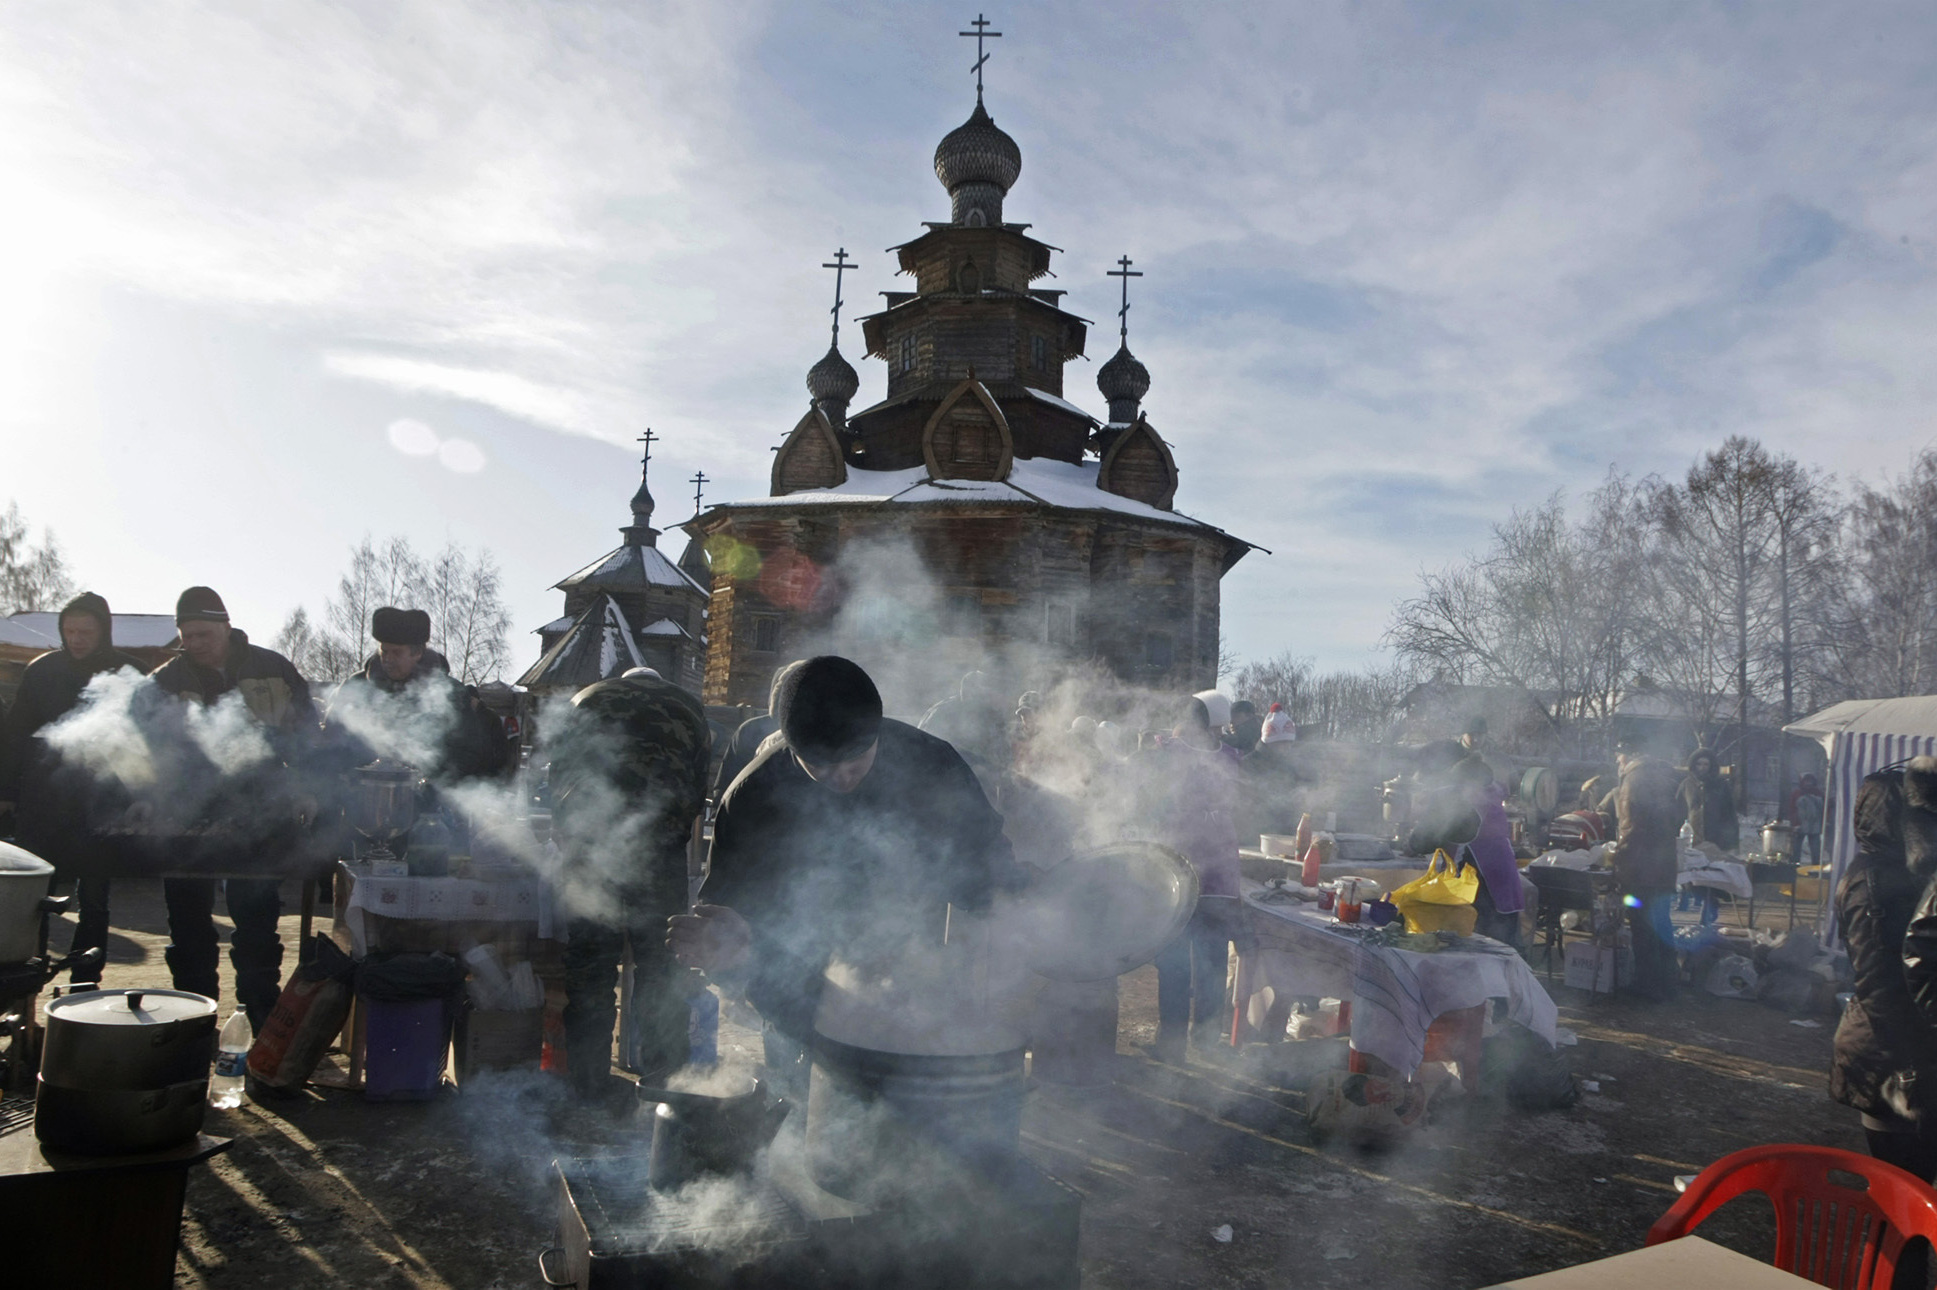 Street vendors in the ancient Russian city of Suzdal, some 124 miles east of Moscow, prepare the traditional foods that mark the Maslenitsa holiday in 2010.